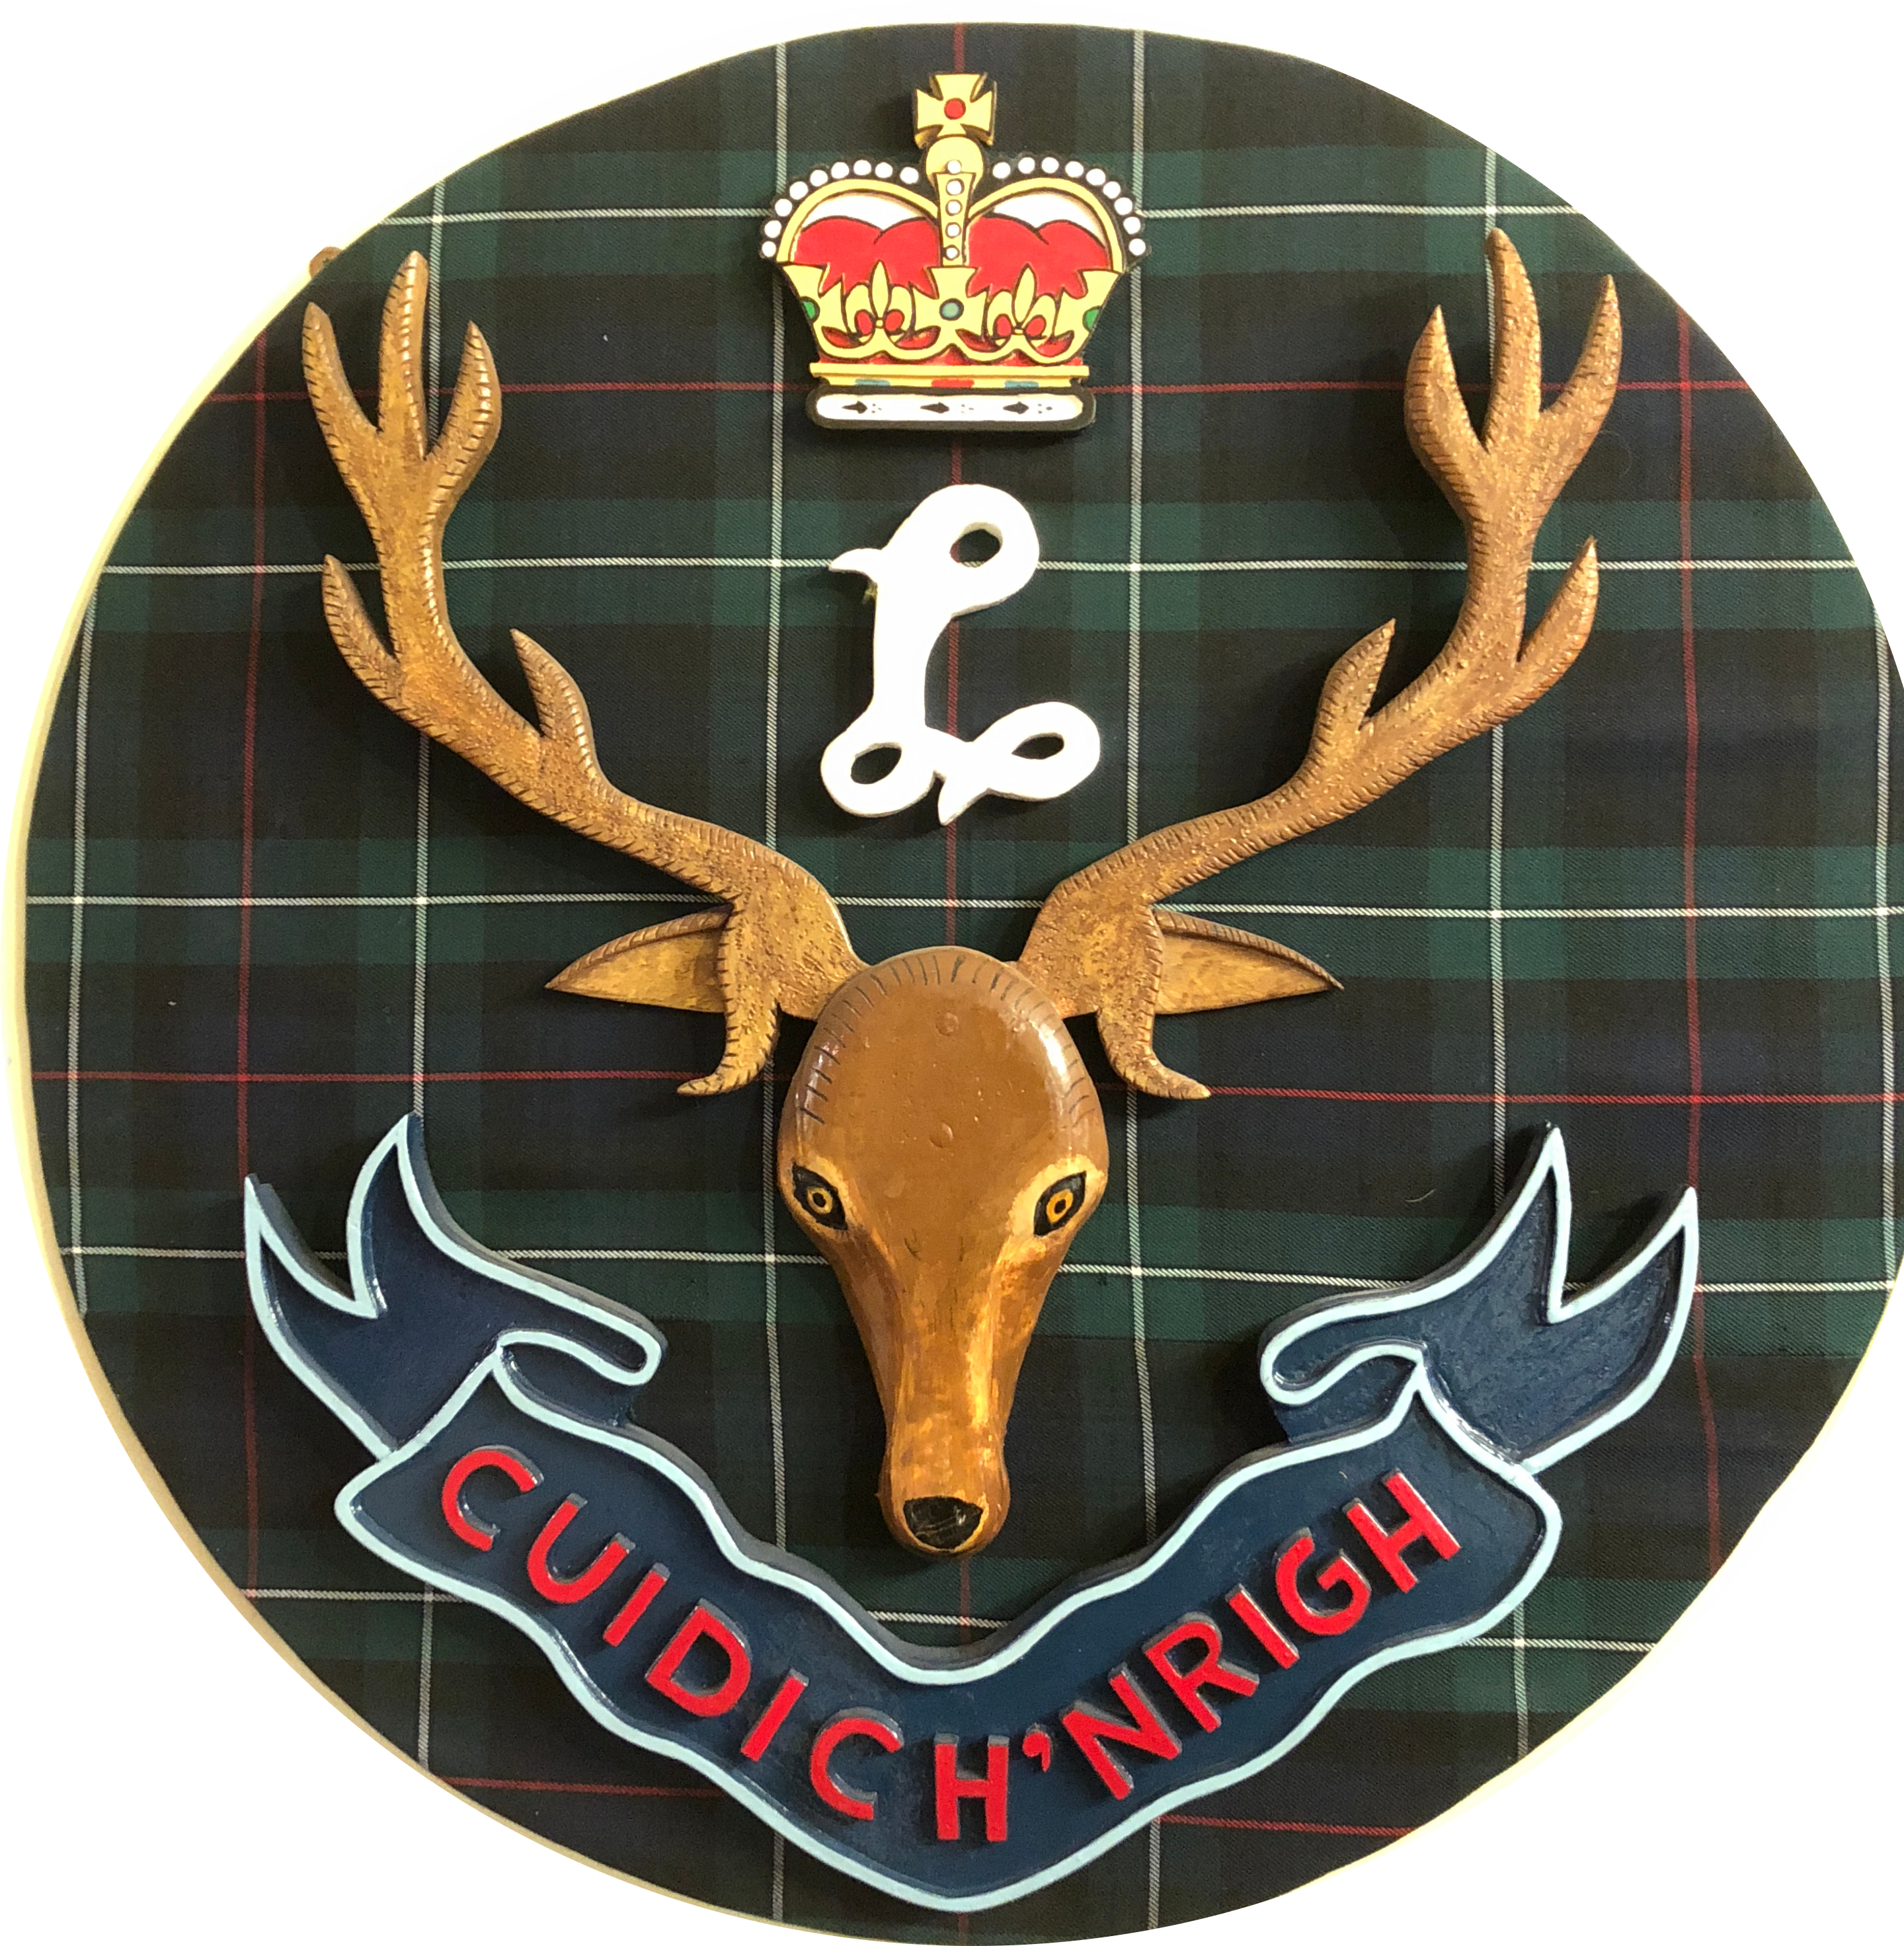 image of seaforth highlander's emblem